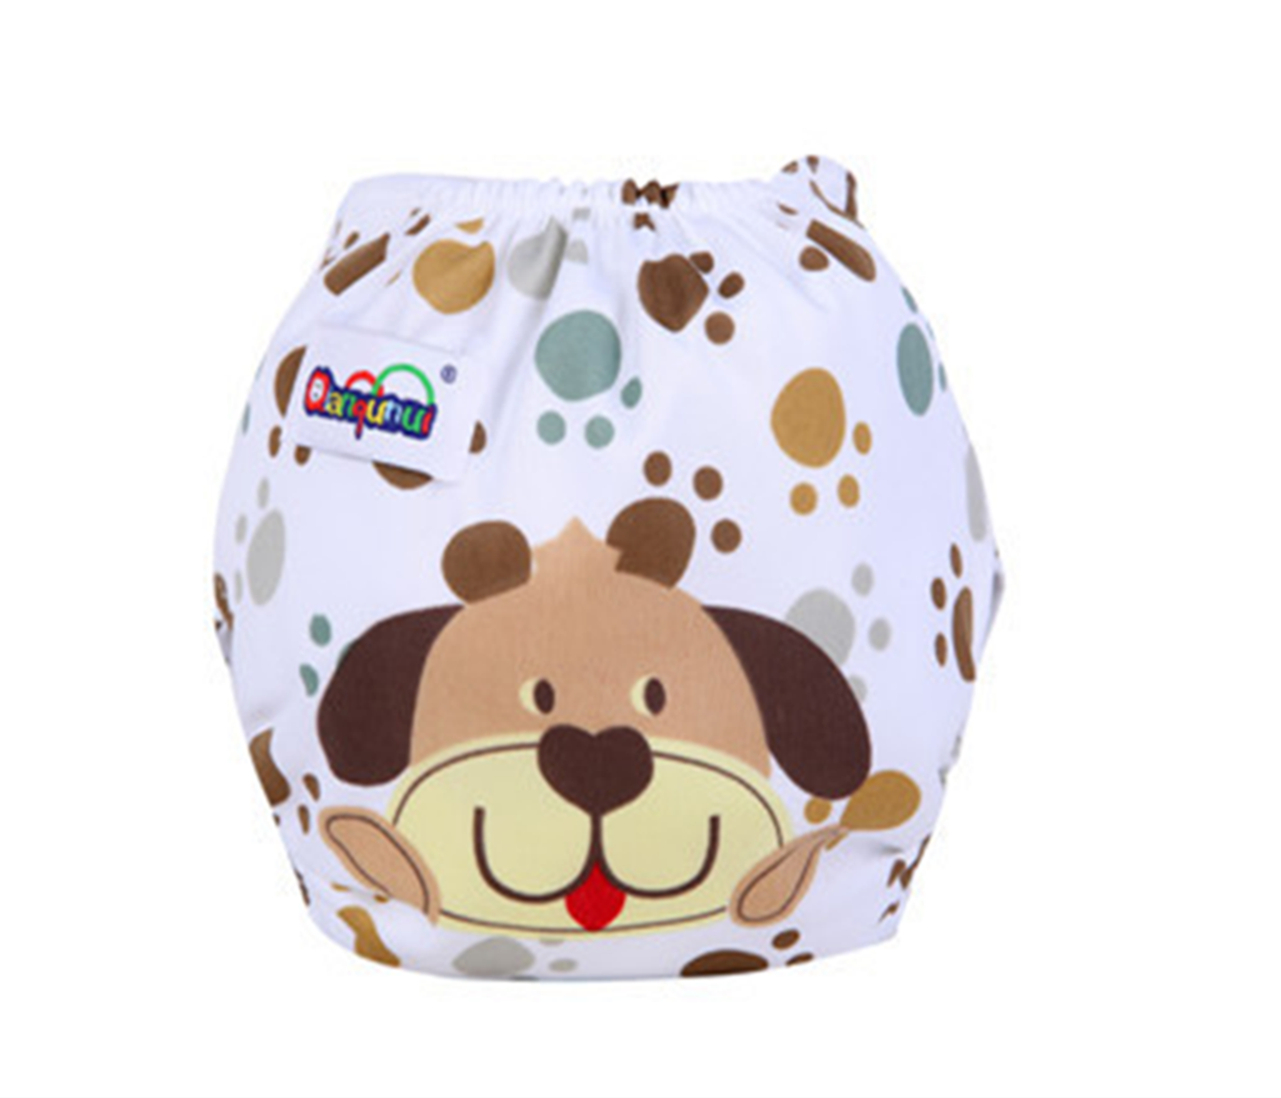 1pc Baby Cotton Diapers Newborn Waterproof Reusable Cloth Diaper/Reusable Nappies Training Pants Diaper Cover Washable 11.11